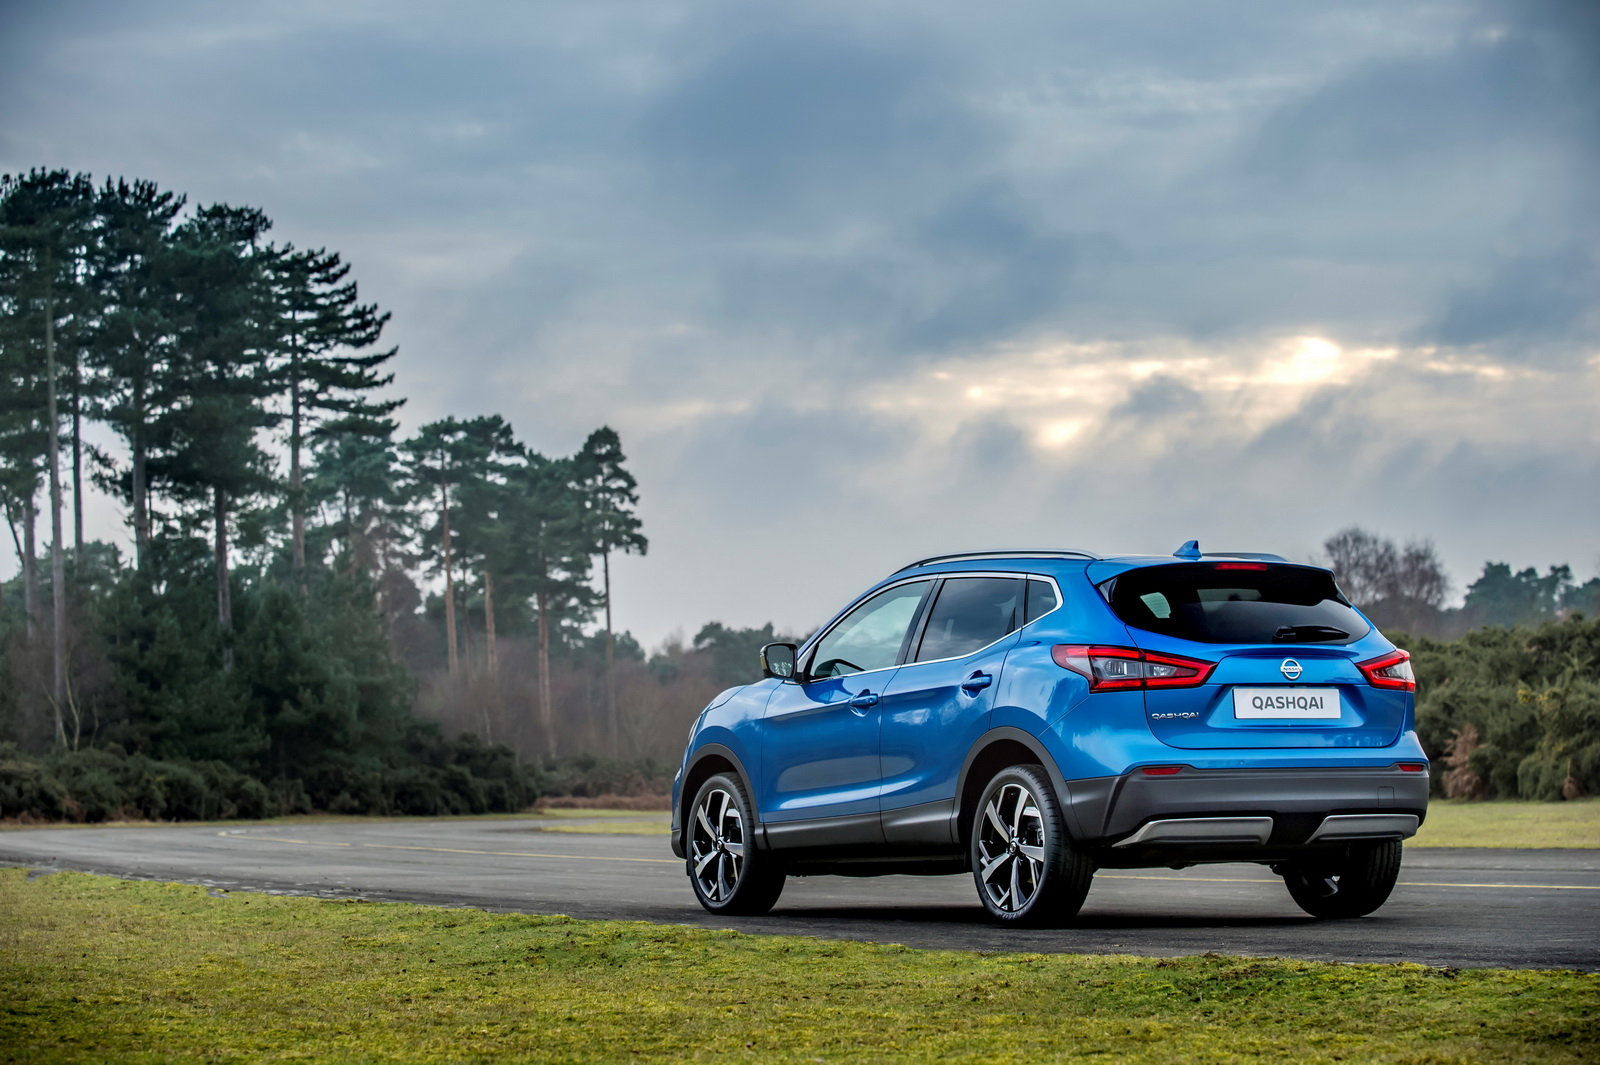 Nowy Nissan Qashqai Facelift 2017